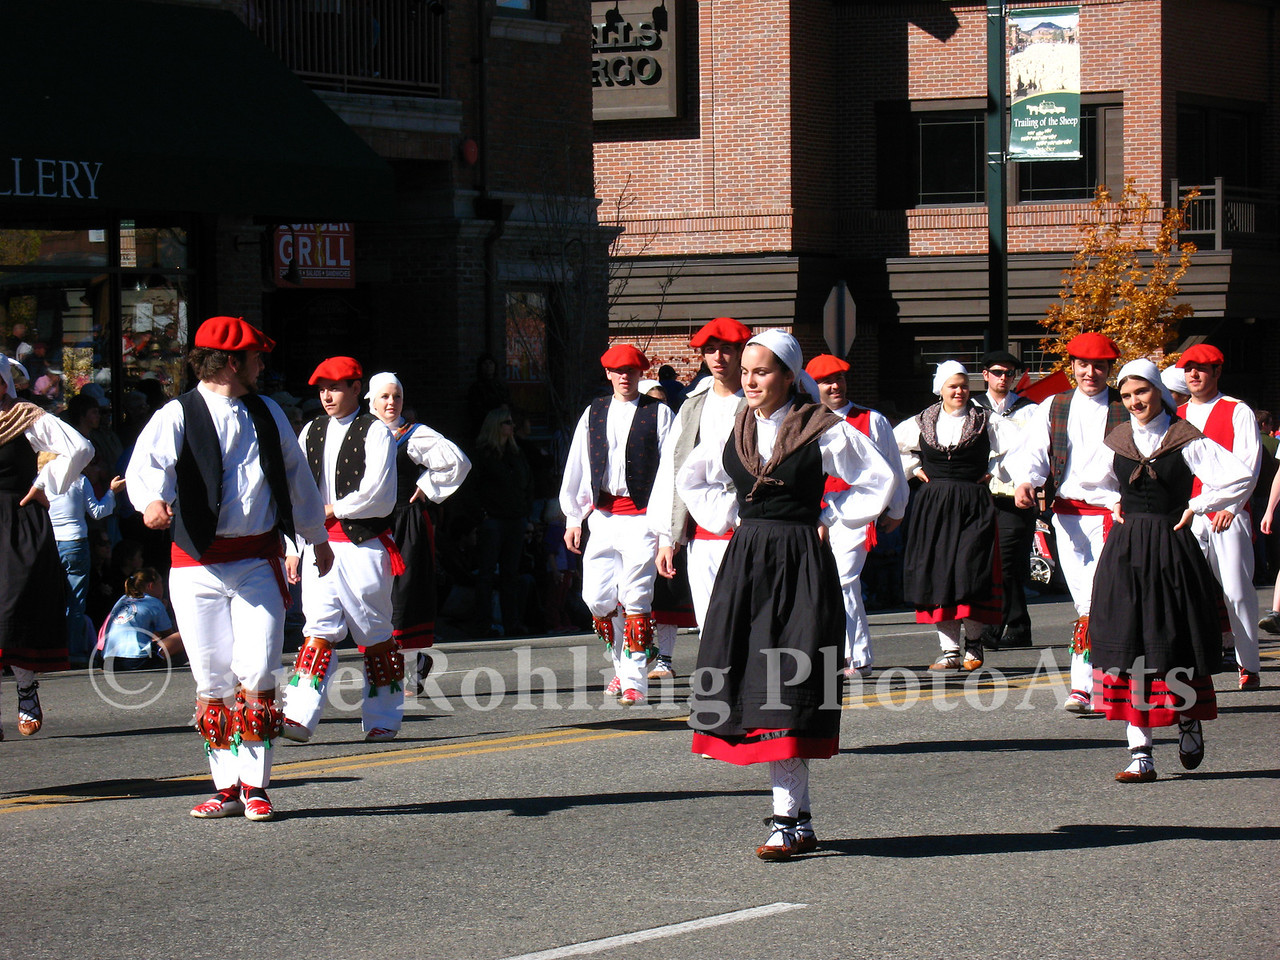 Basque dancers in colorful, traditional costumes in the Trailing of the Sheep Festival parade, Ketchum, Idaho.